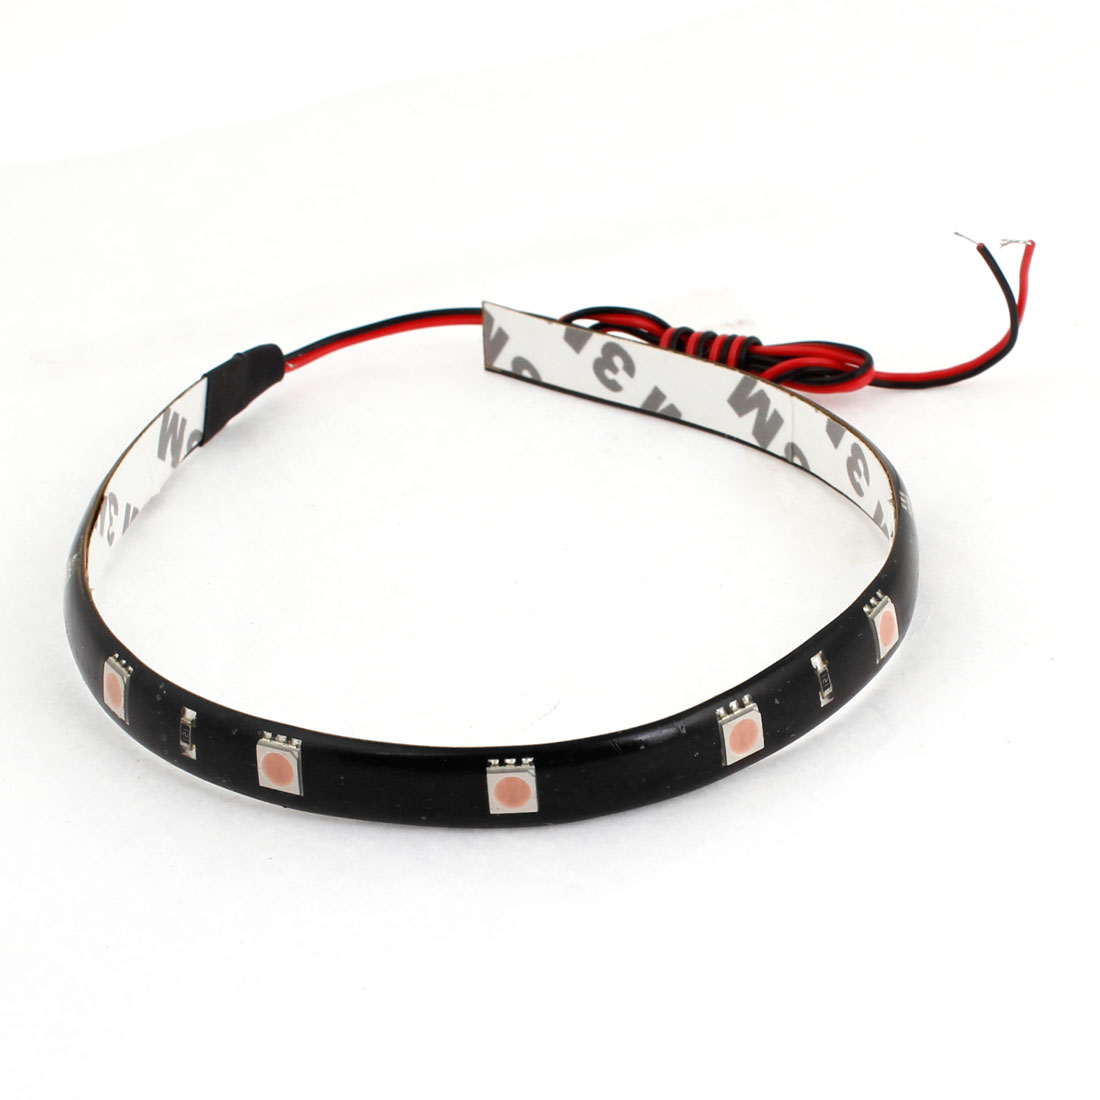 Adhesive Tape Pink 12 5050 SMD Auto Car Flexible Decor LED Strip 30cm